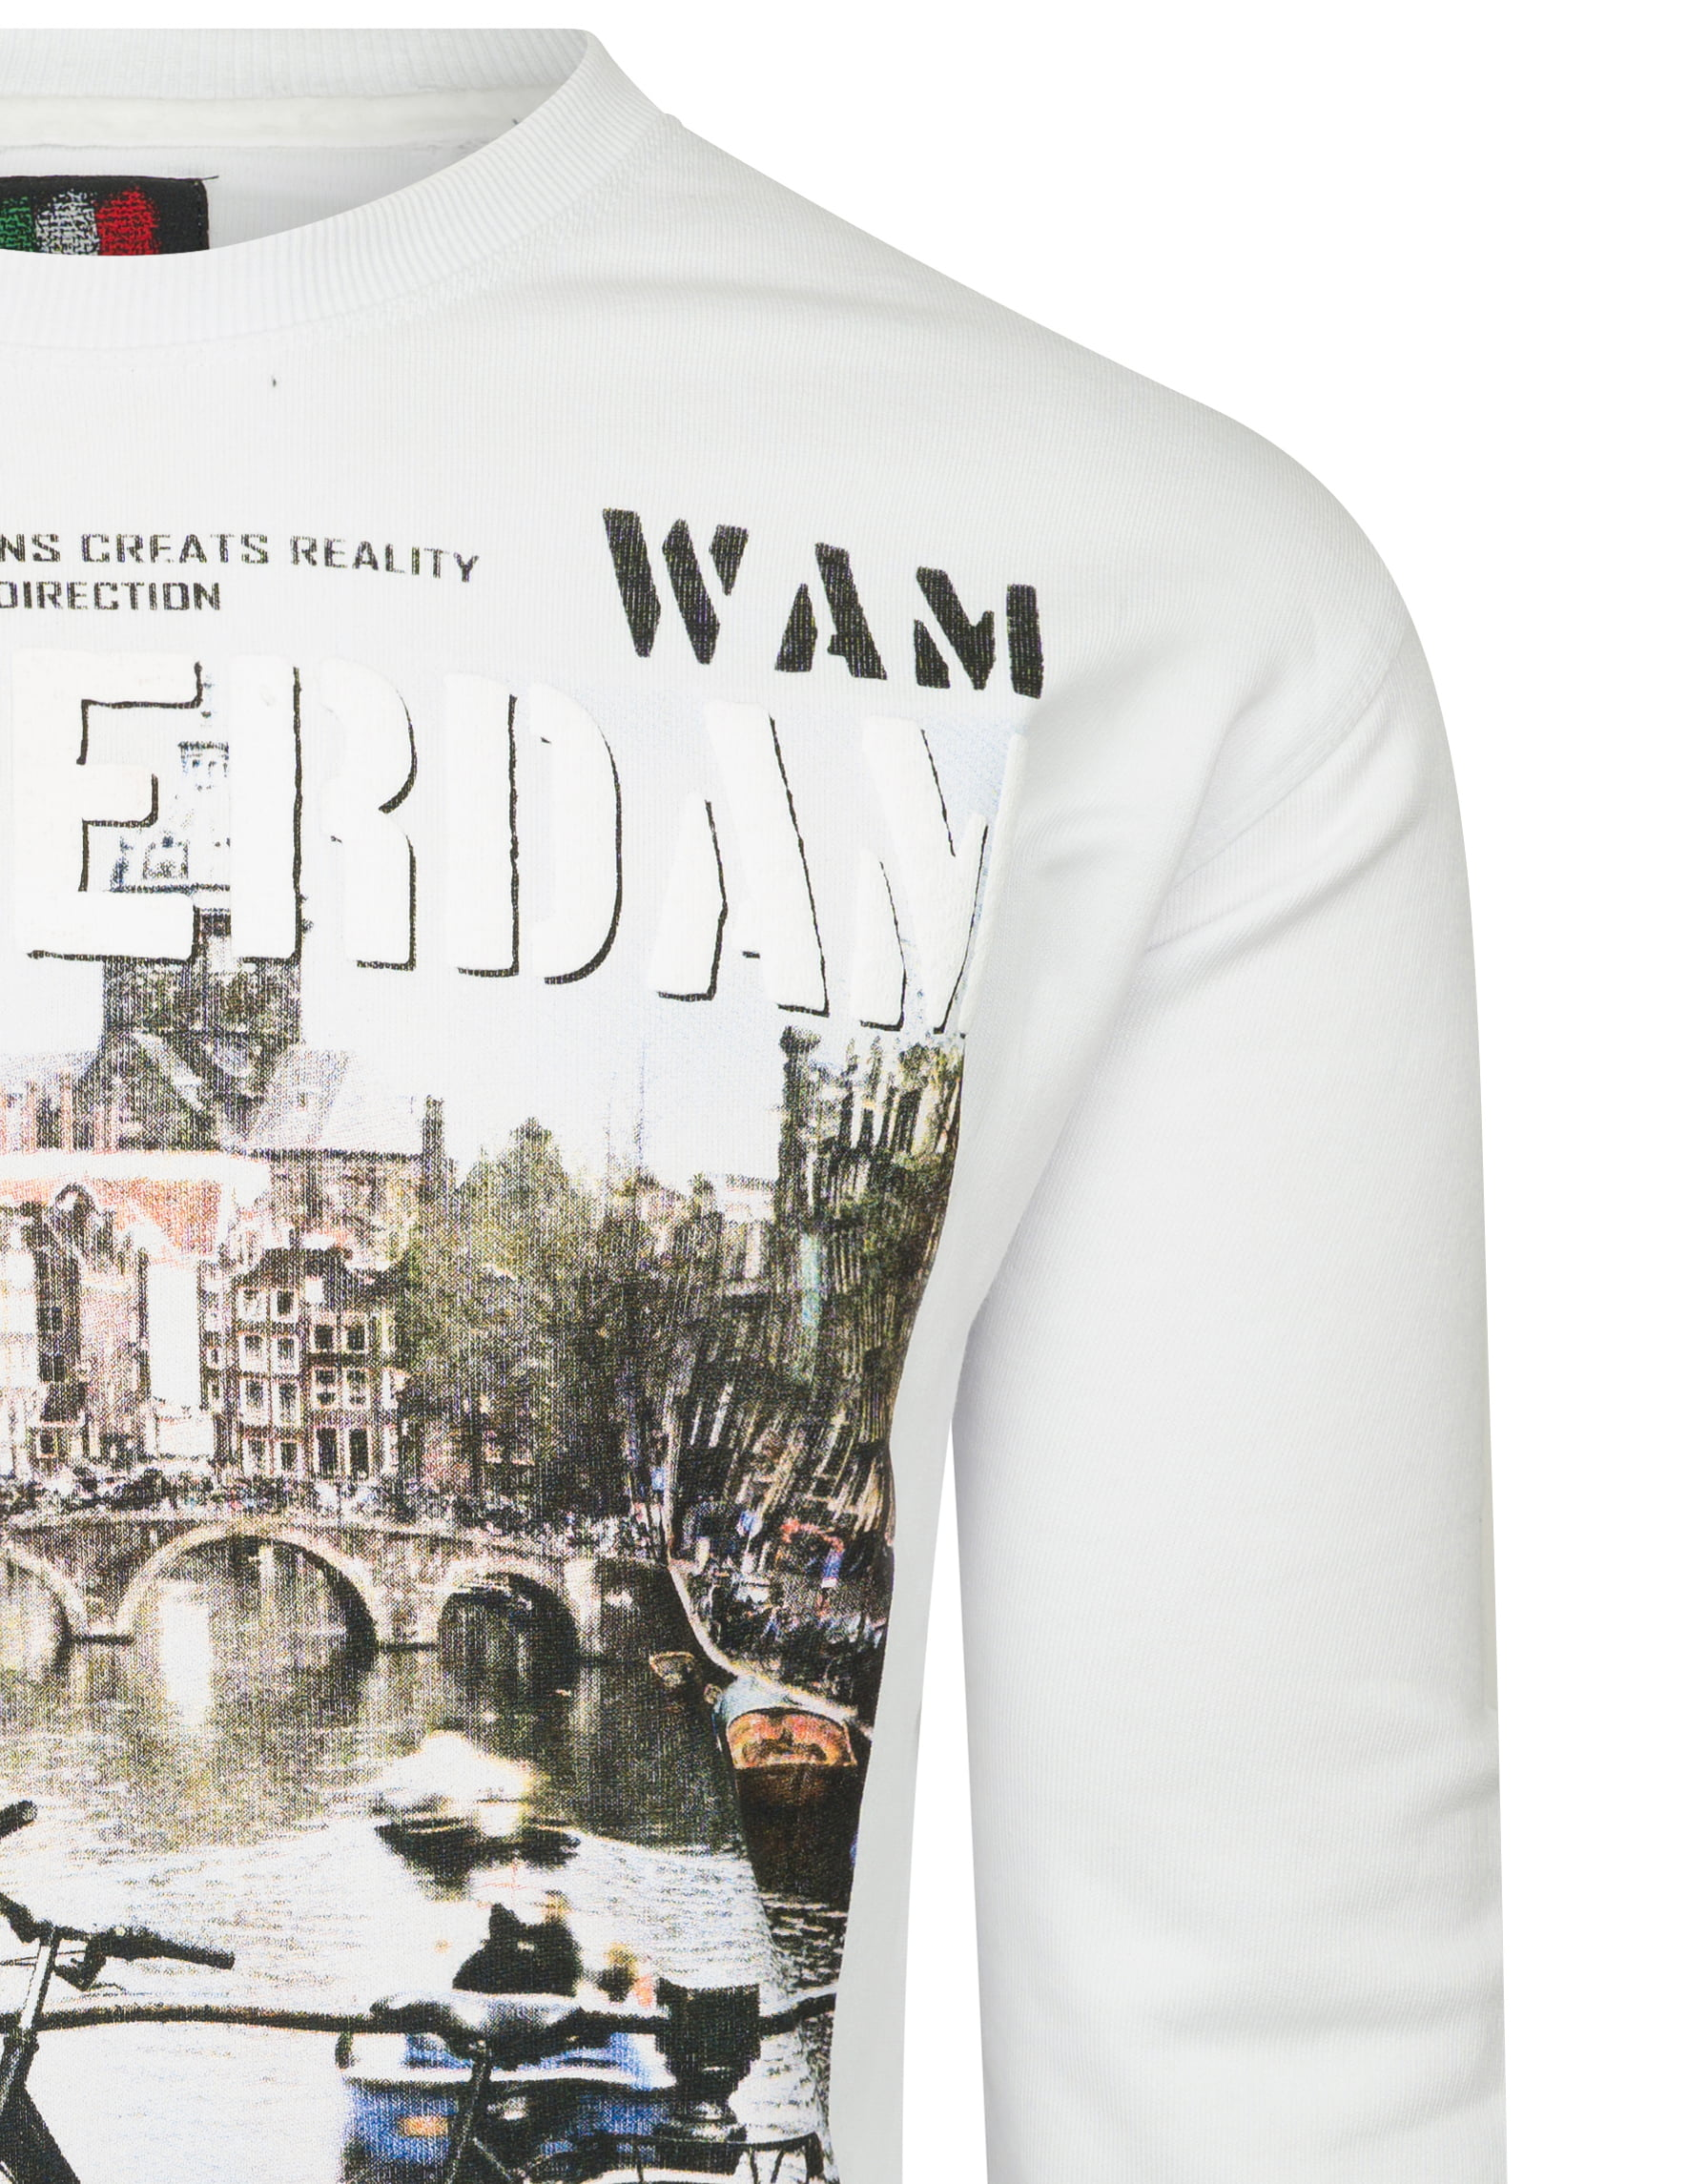 Trendy Italia Style trui van Wam Denim. De sweater is